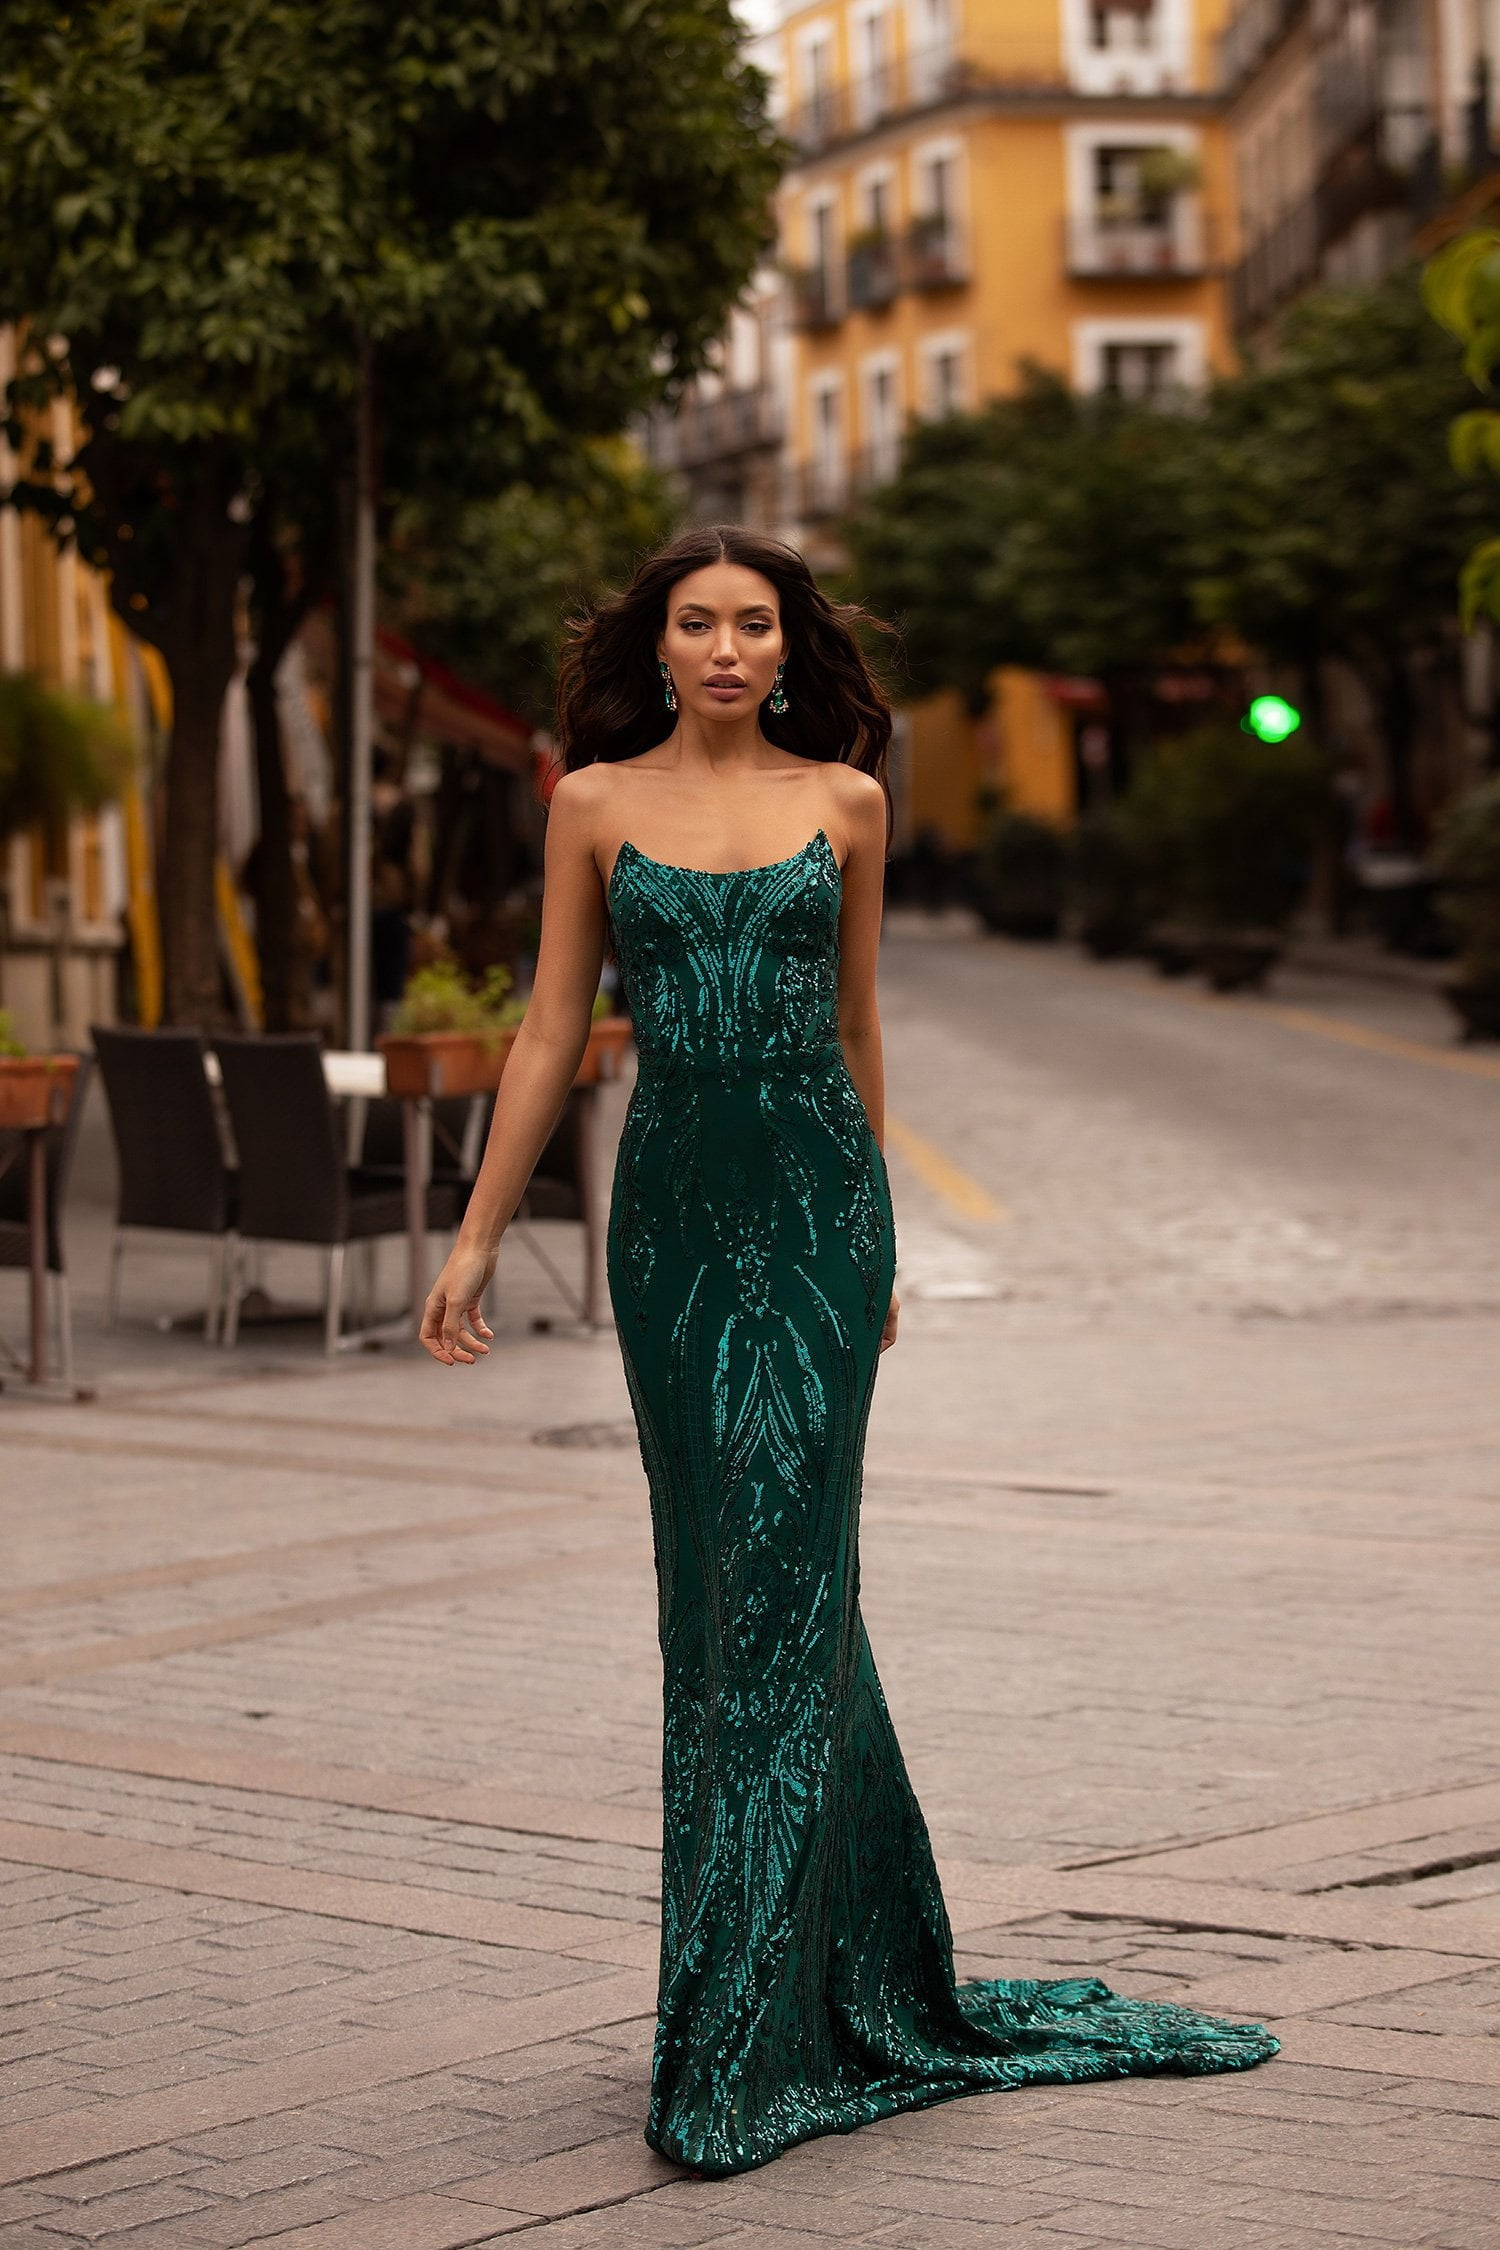 Ramira - Emerald Strapless Patterned Sequin Mermaid Gown